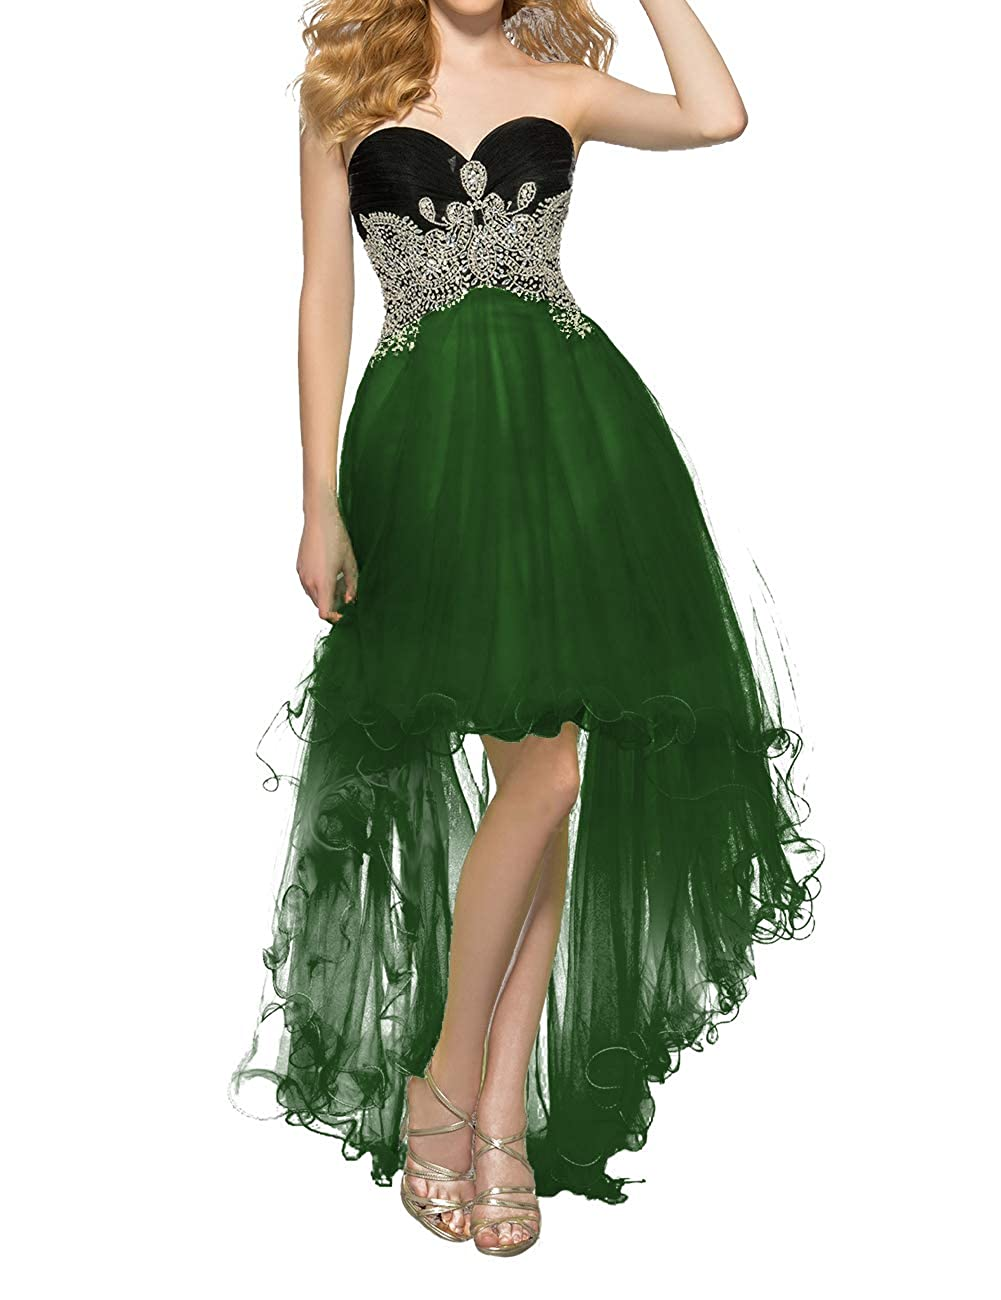 Deep Green Uther Women's Tulle HiLow Beaded Prom Dresses Strapless Evening Homecoming Cocktail Gowns